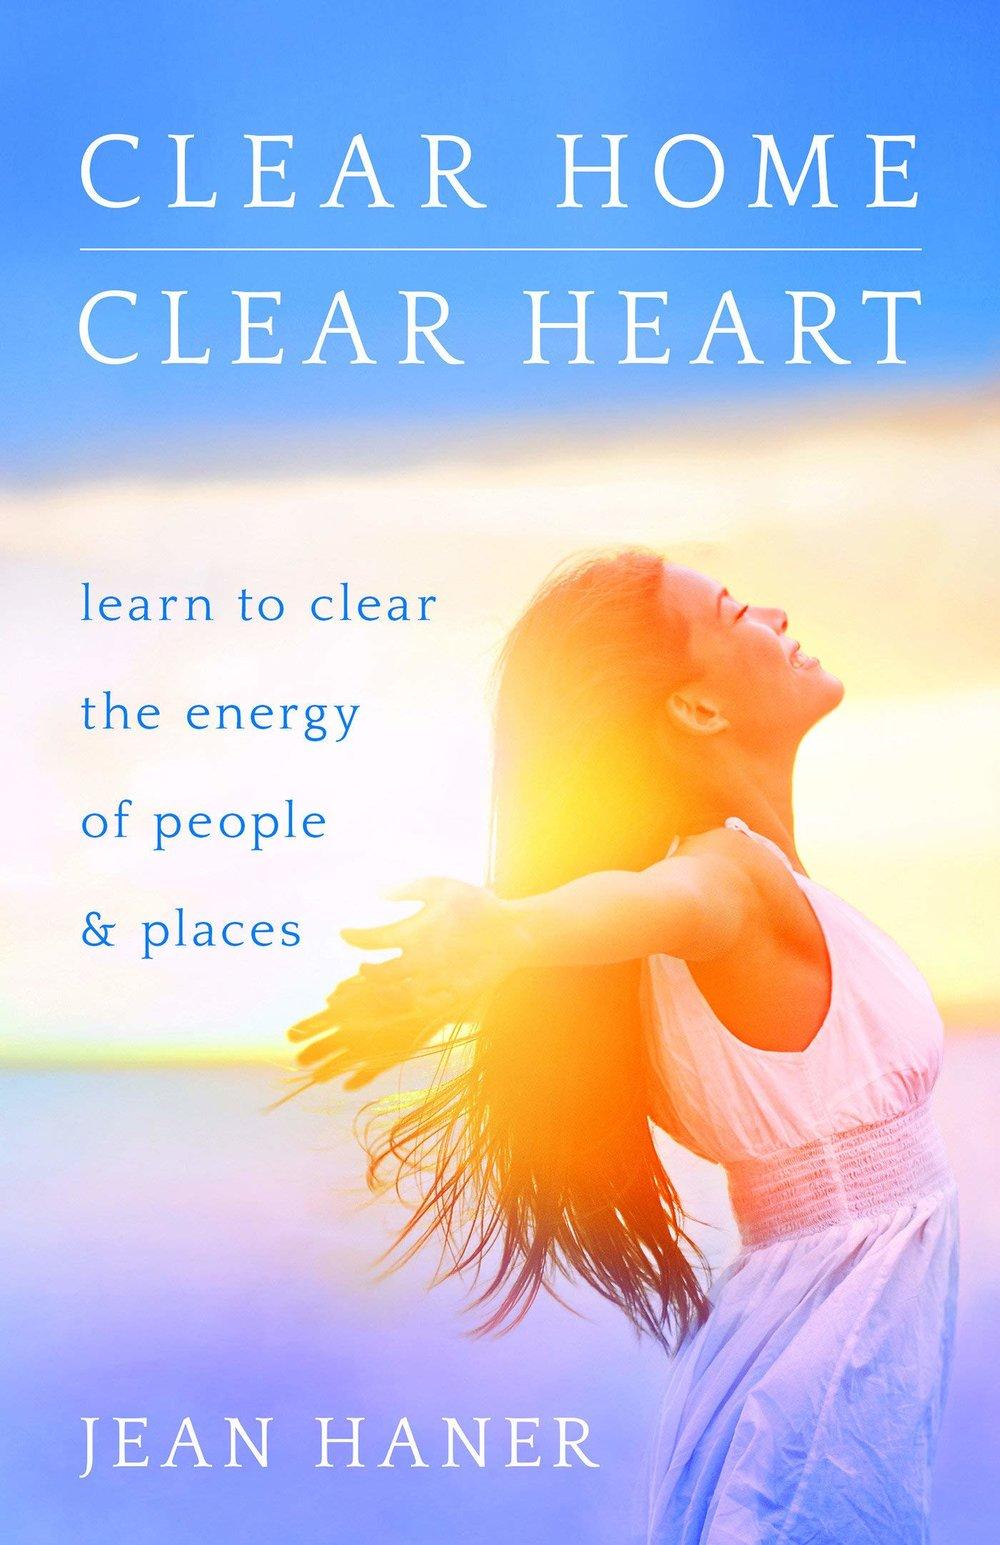 Clear Home, Clear Heart Learn to Clear the Energy of People & Places.jpg